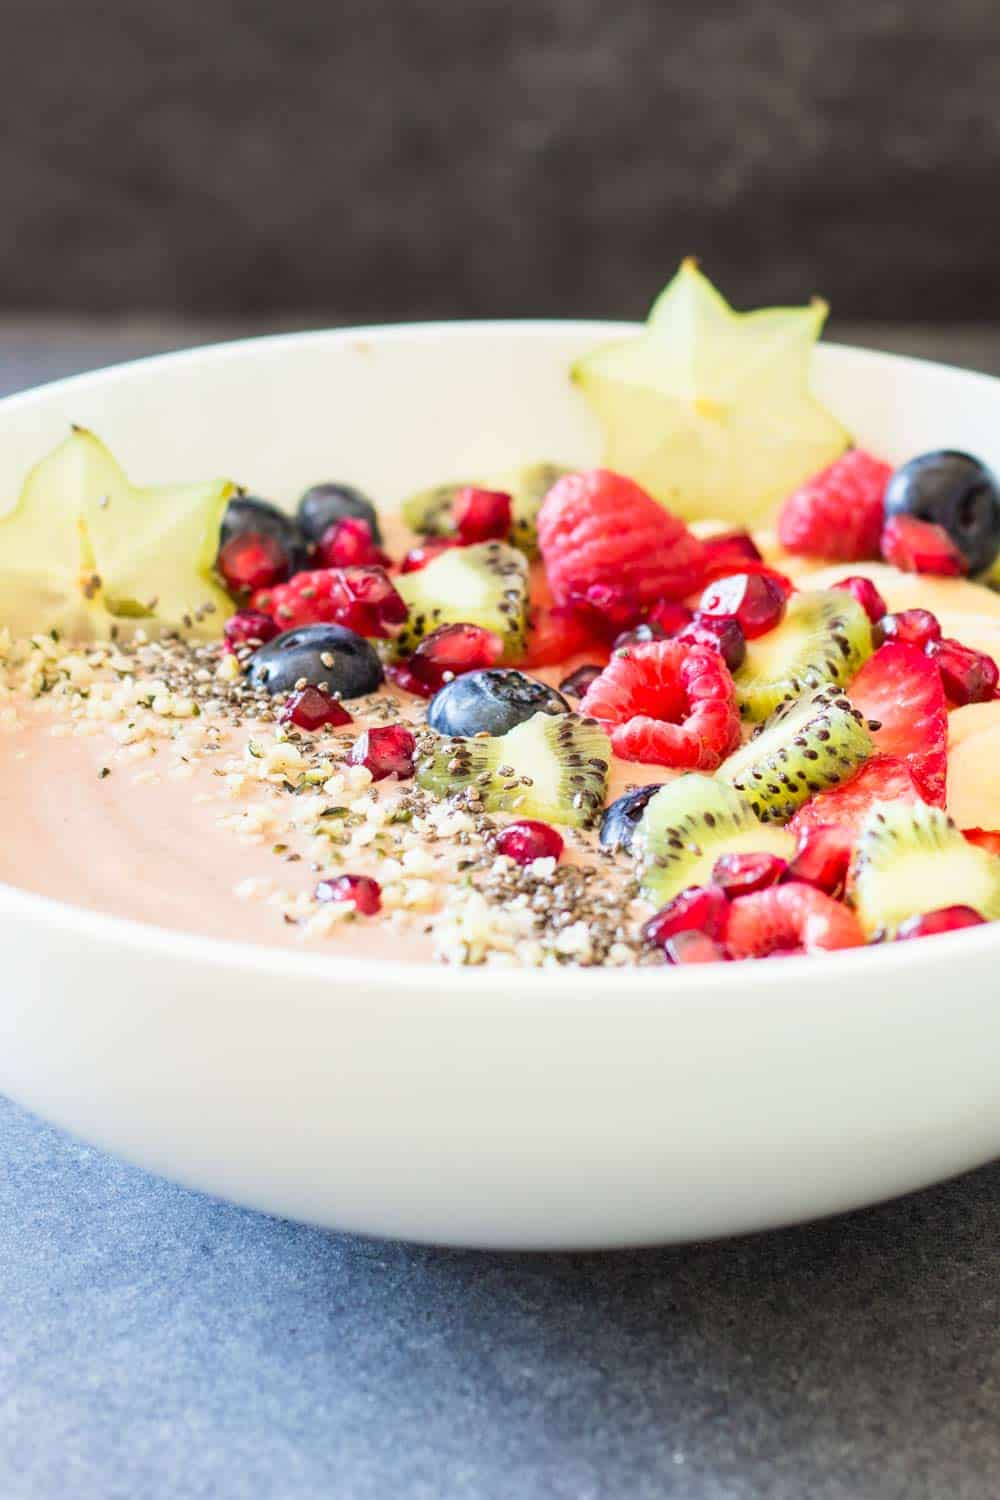 Close up of Chocolate Smoothie Bowl with chopped fresh fruit to show texture.